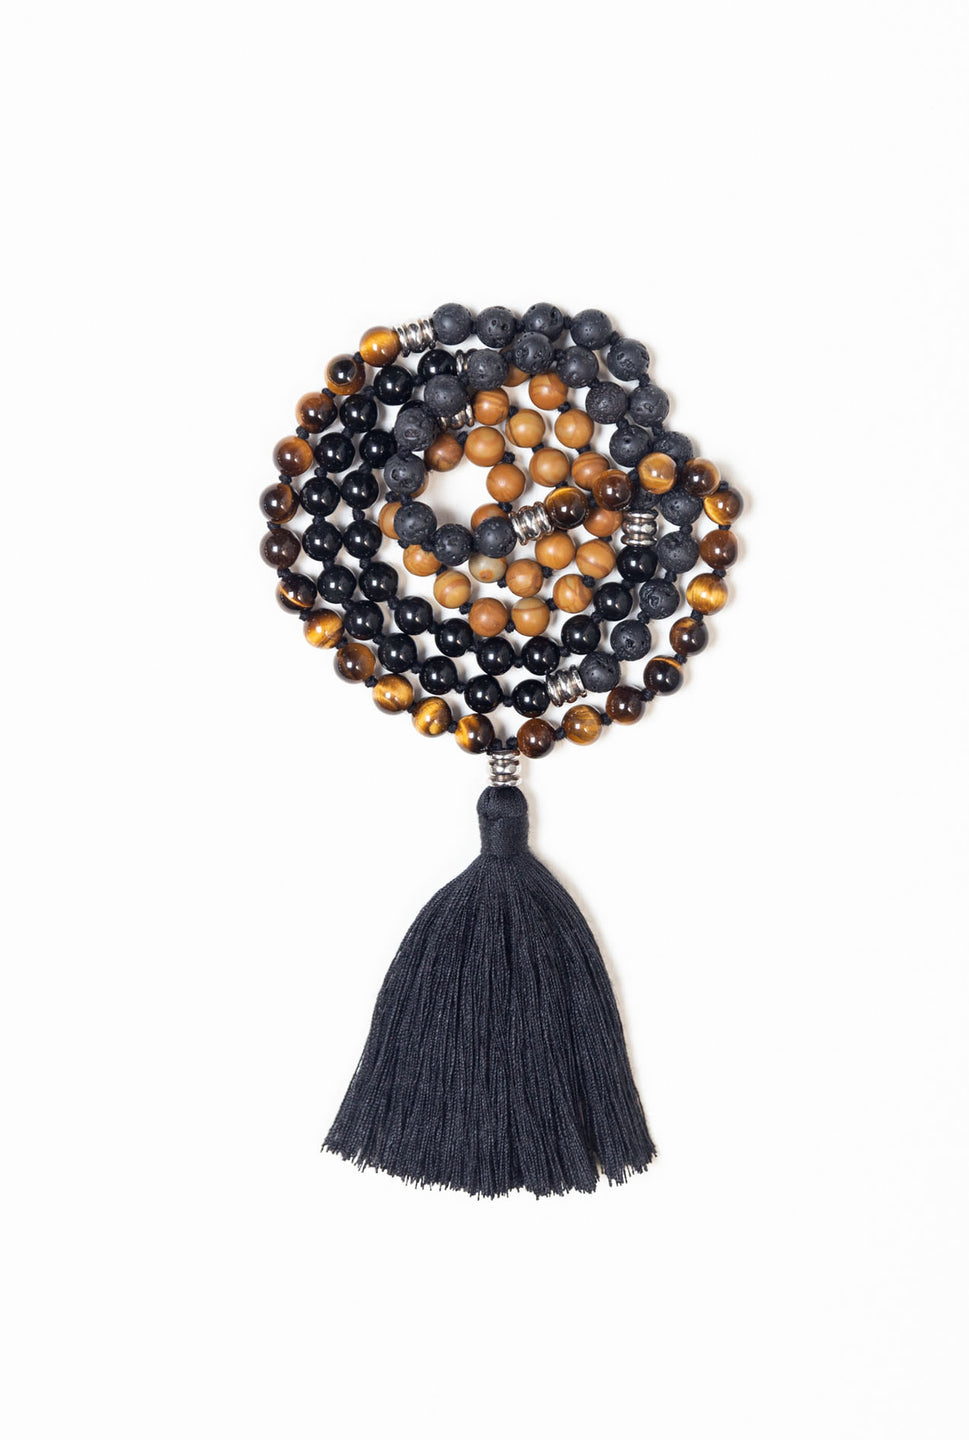 Peaceful Protector Mala